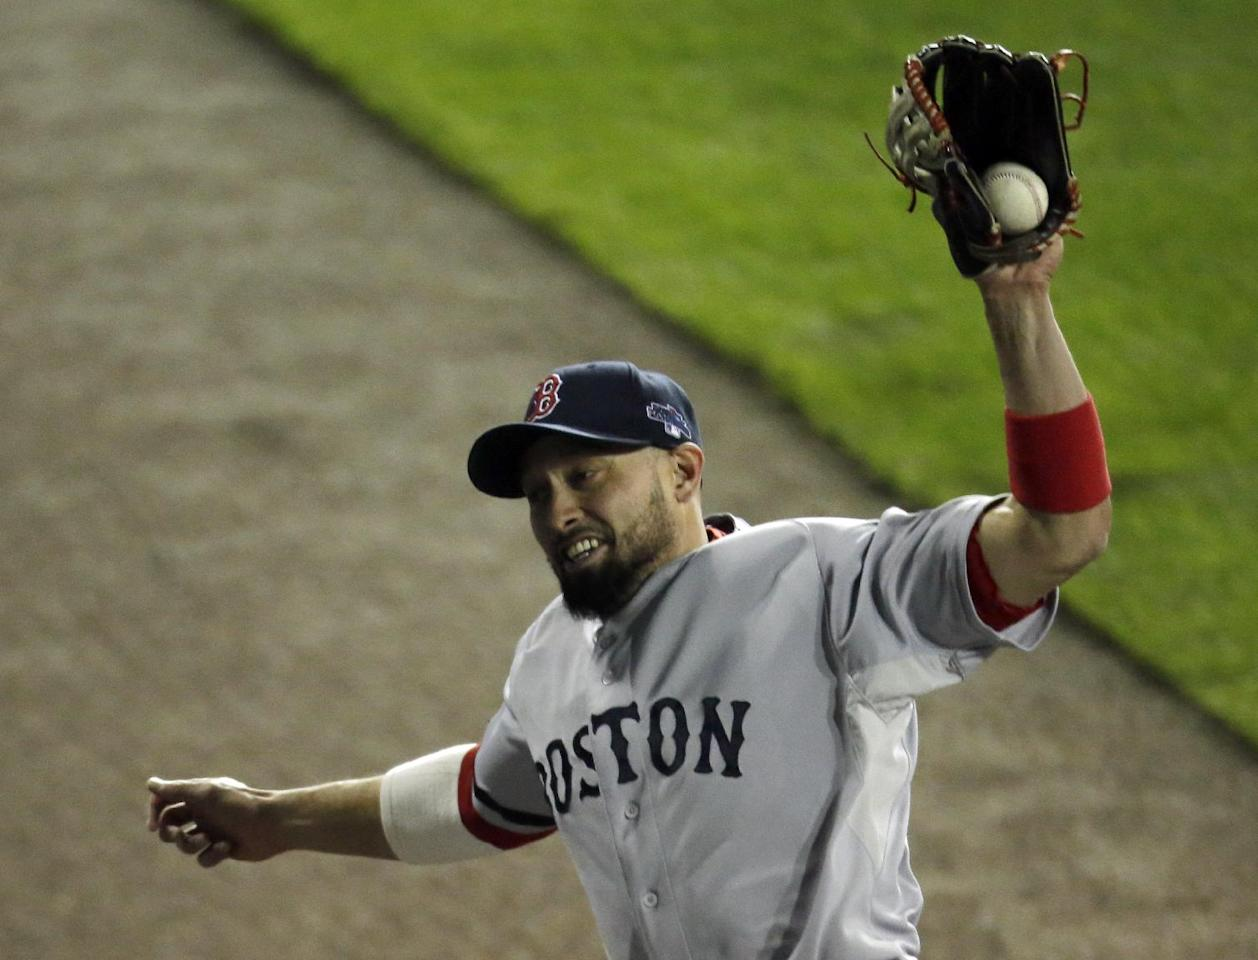 Boston Red Sox right fielder Shane Victorino makes a catch on a Detroit Tigers' Miguel Cabrera fly ball in the seventh inning during Game 4 of the American League baseball championship series Wednesday, Oct. 16, 2013, in Detroit. (AP Photo/Charlie Riedel)